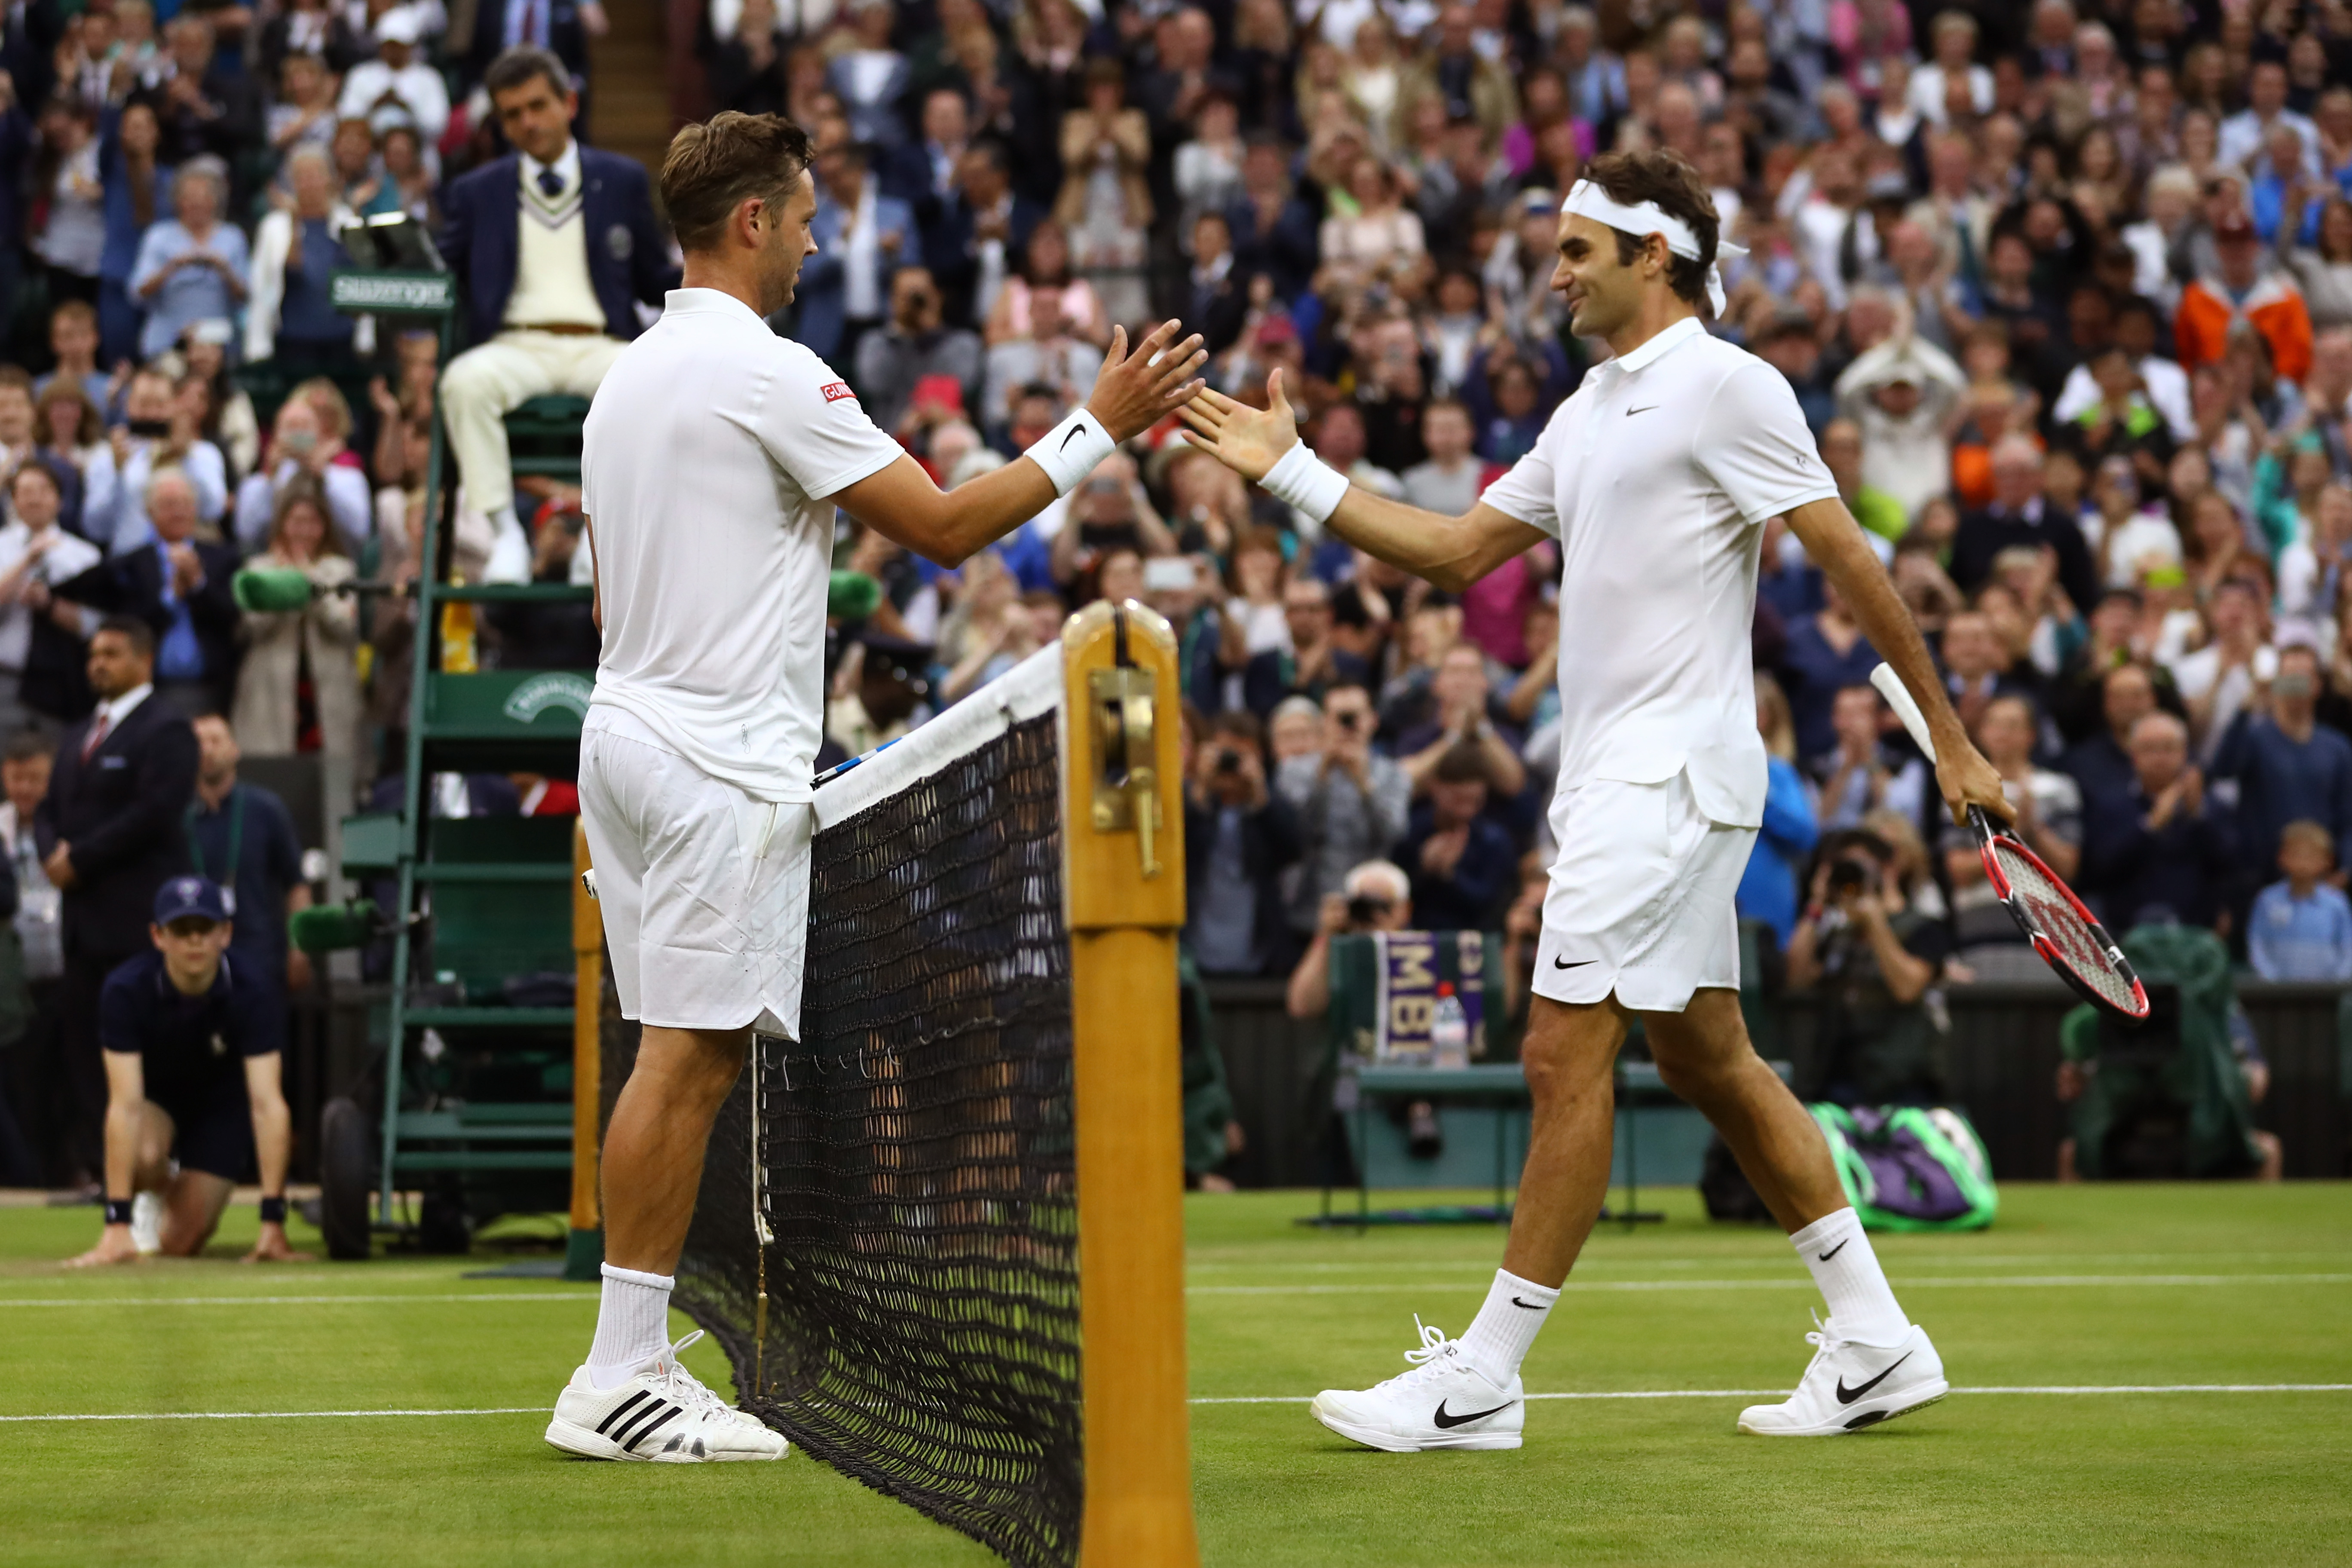 LONDON, ENGLAND - JUNE 29: Marcus Willis of Great Britain and Roger Federer of Switzerland shake hands following the Men's Singles second round match on day three of the Wimbledon Lawn Tennis Championships at the All England Lawn Tennis and Croquet Club on June 29, 2016 in London, England. (Photo by Julian Finney/Getty Images)